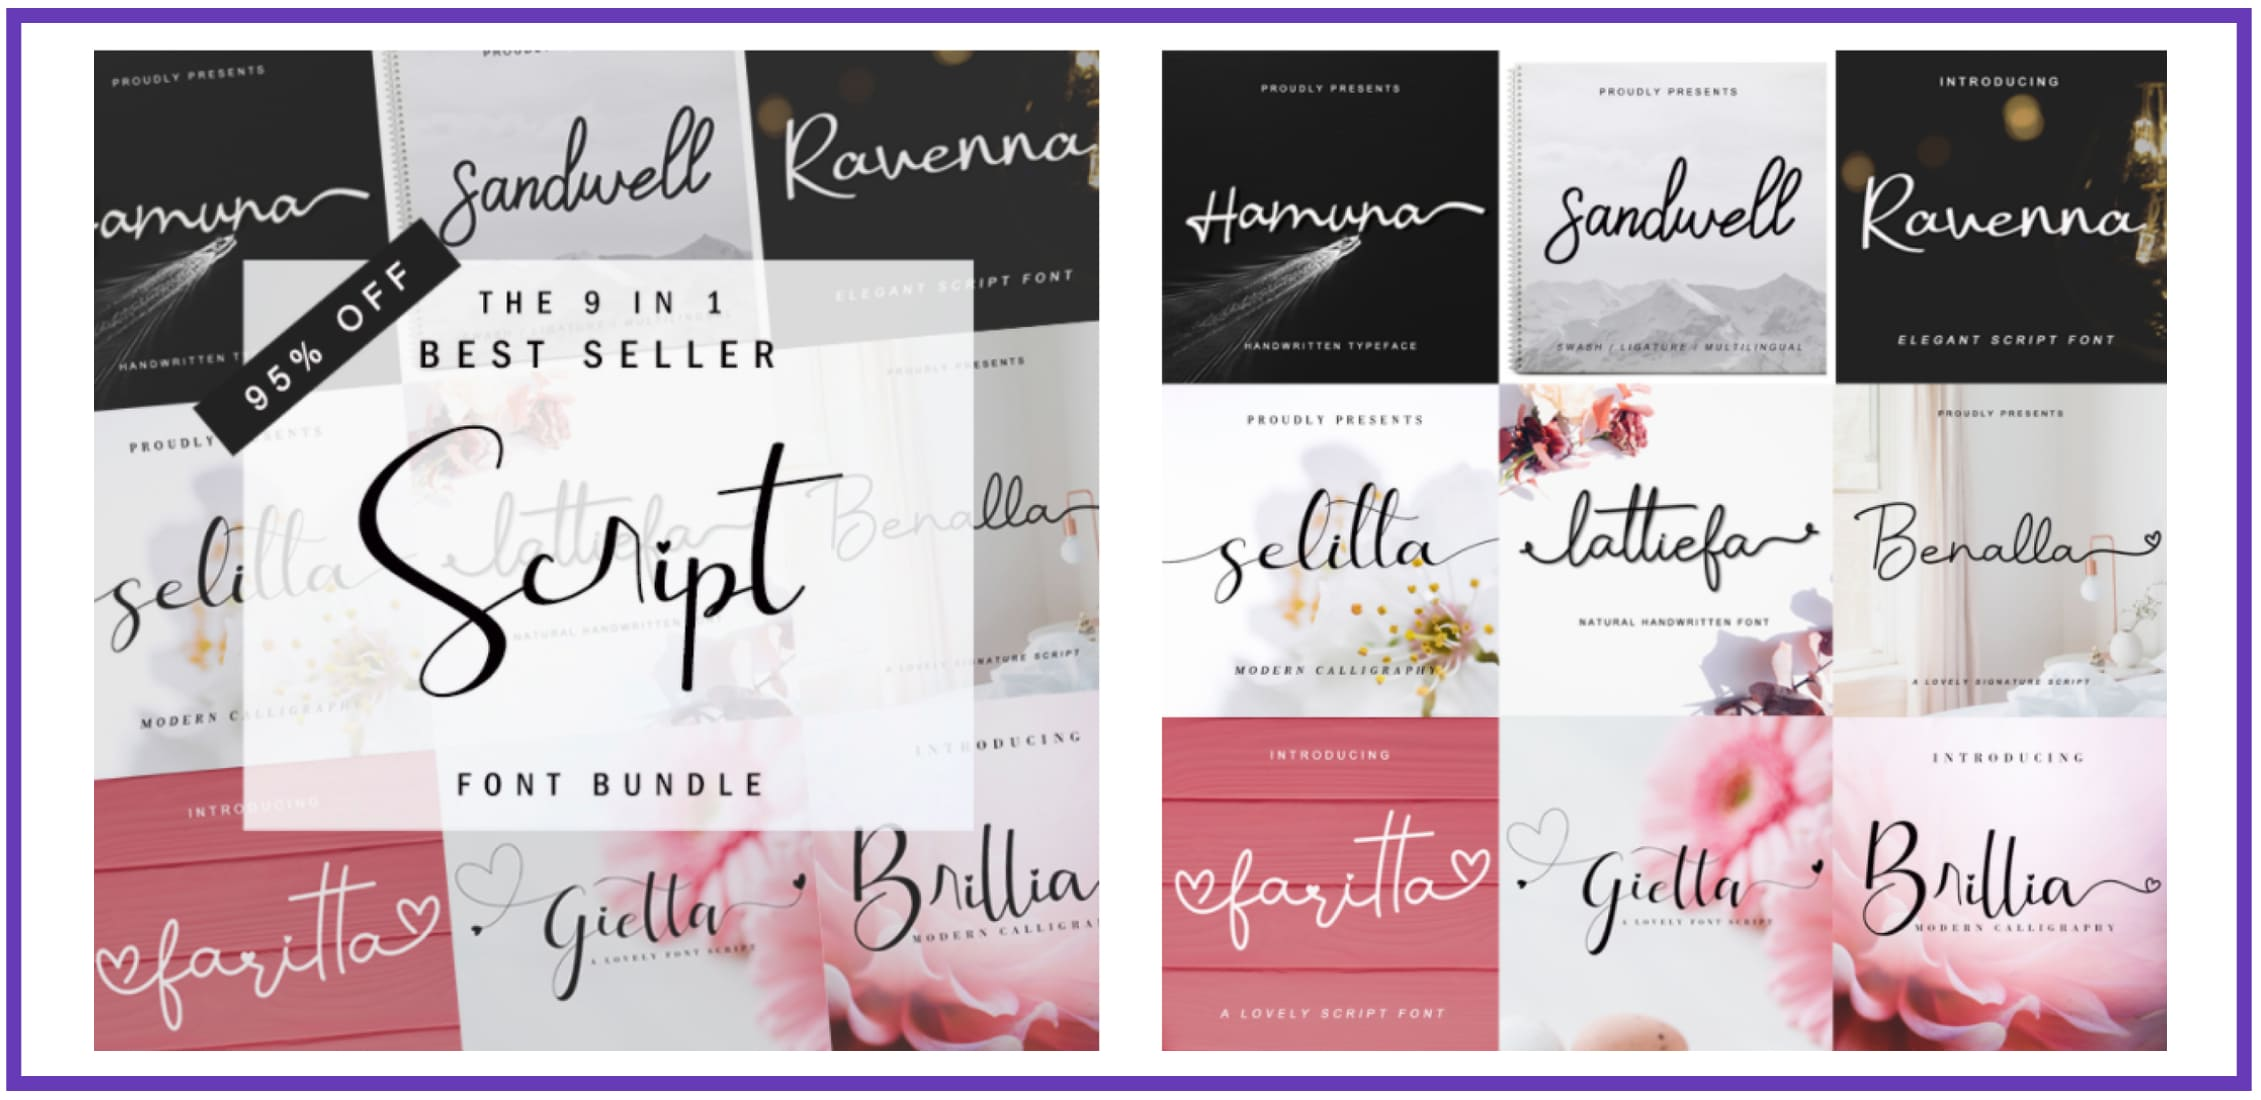 50+ Trendy Whimsical Fonts for Typography 2021 - best whimsical font 13